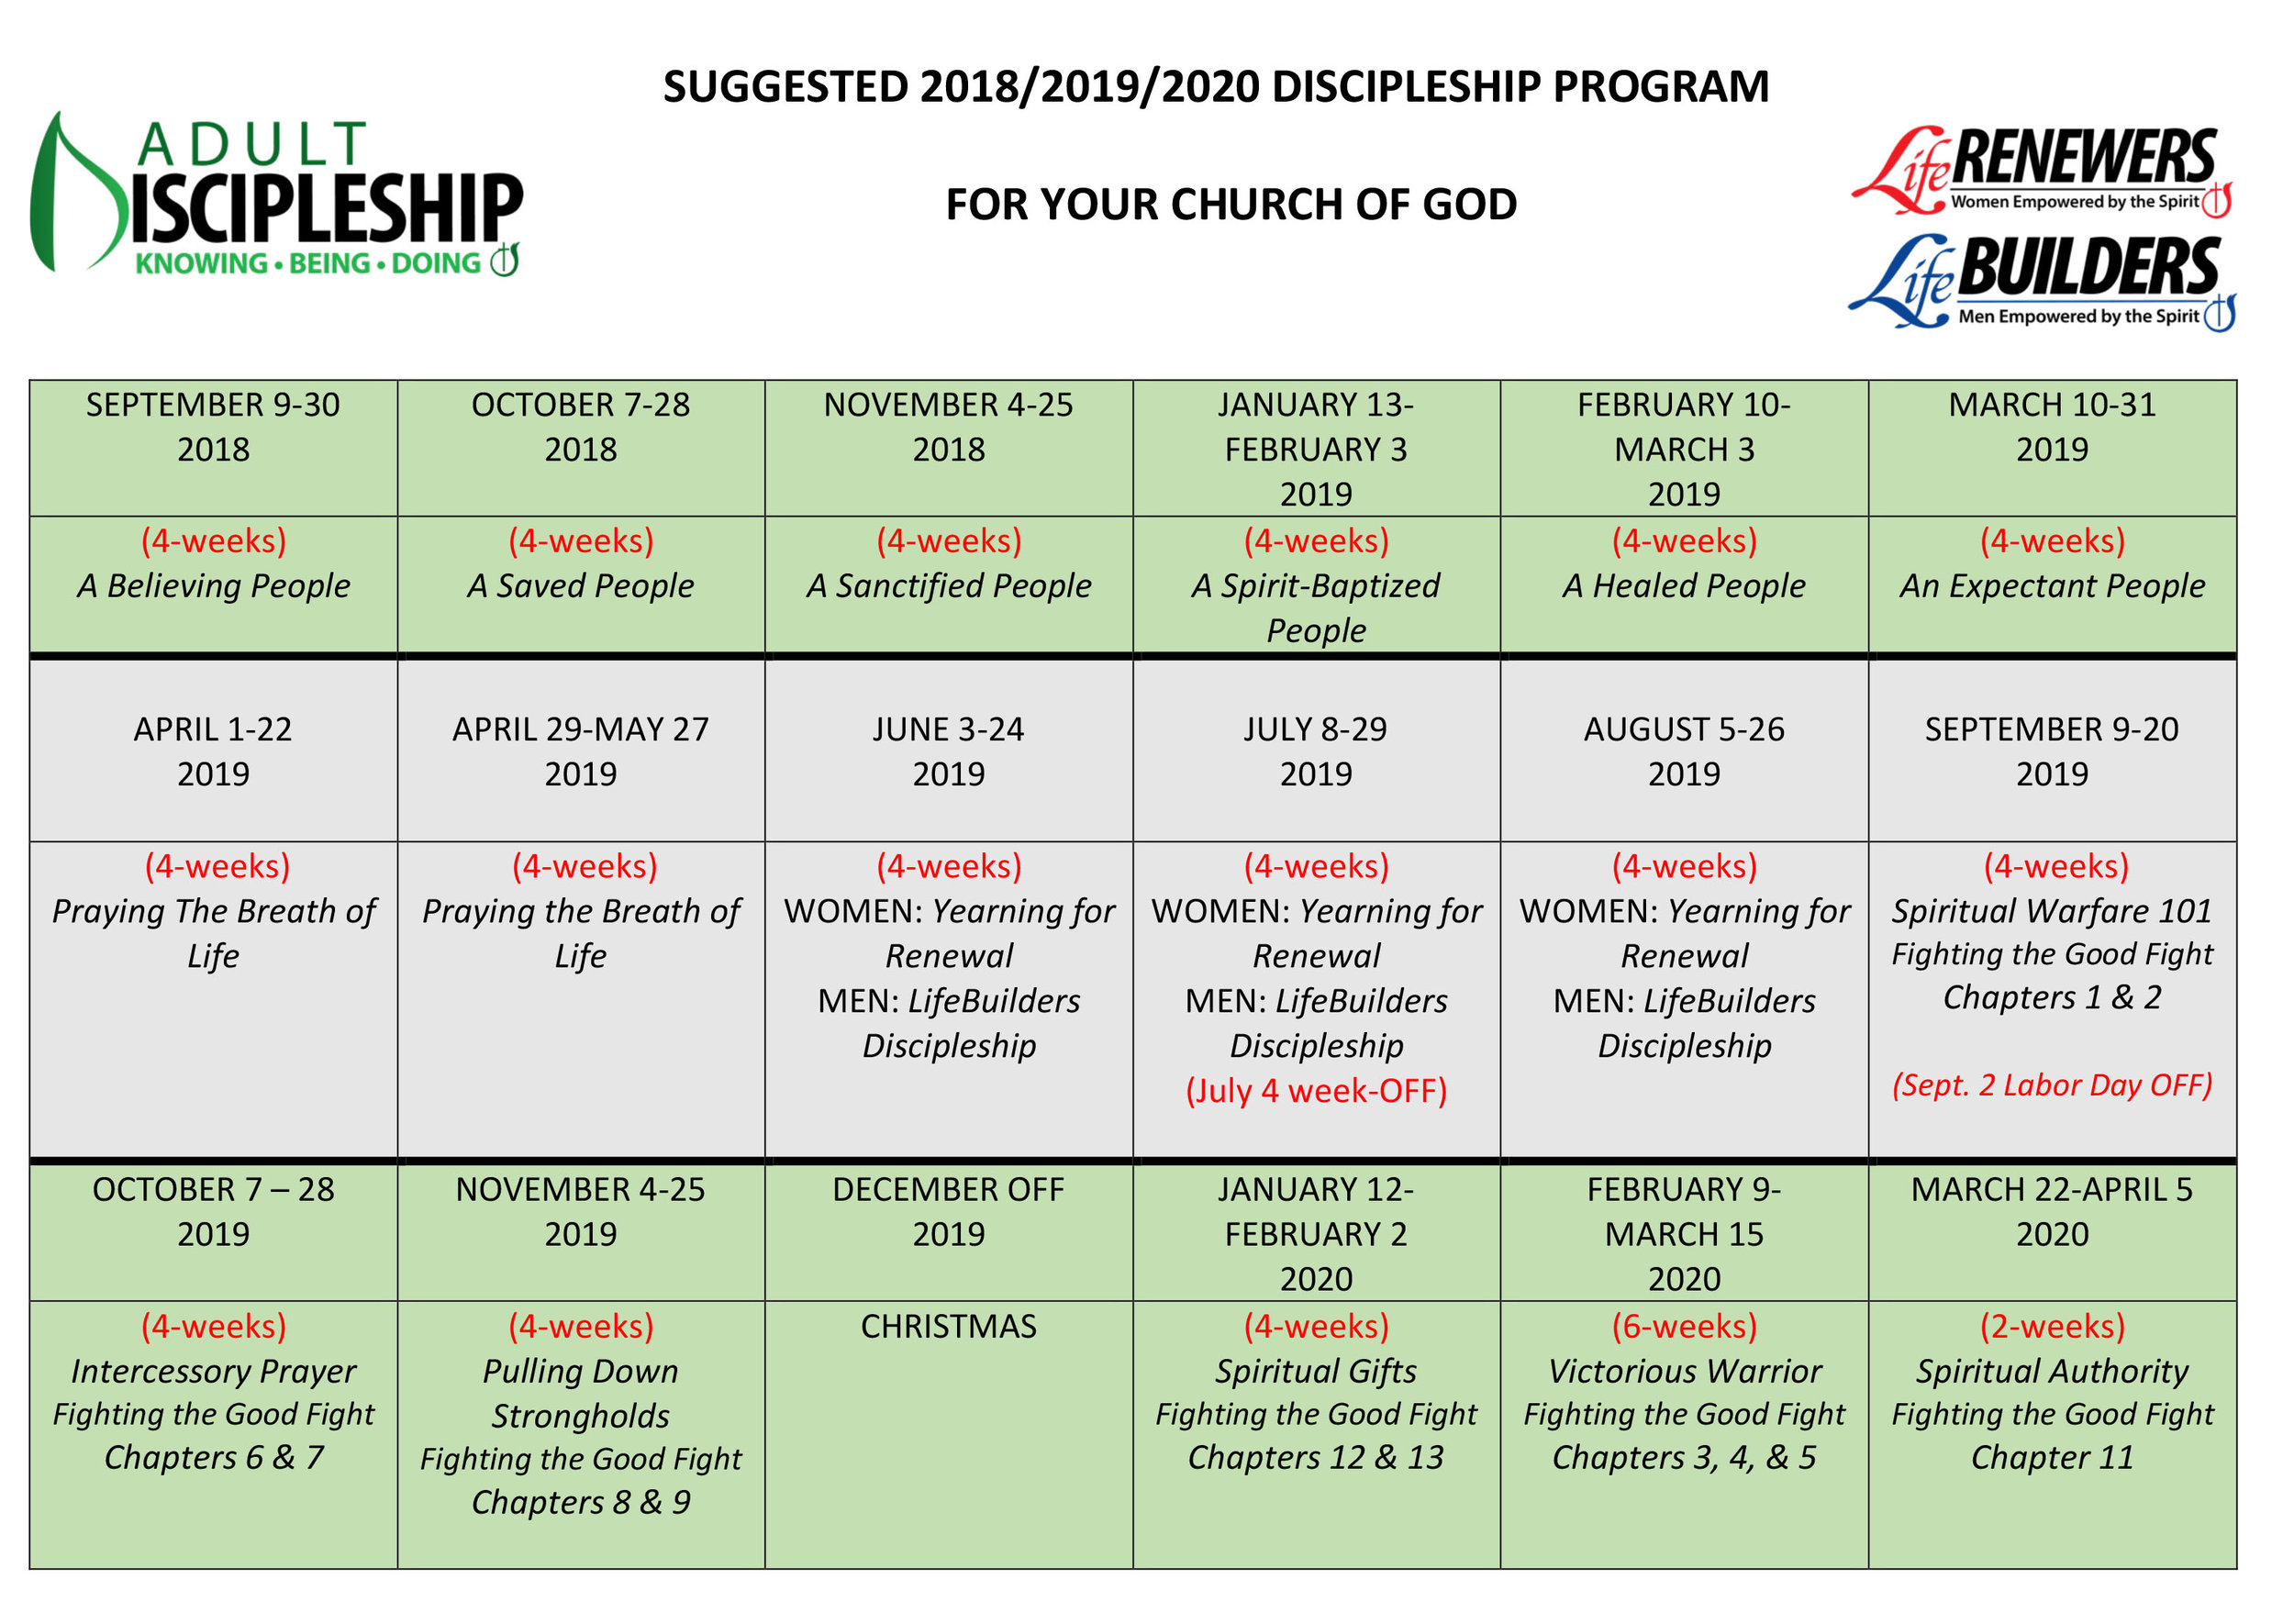 SUGGESTED Discipleship Program for Your COG.jpg